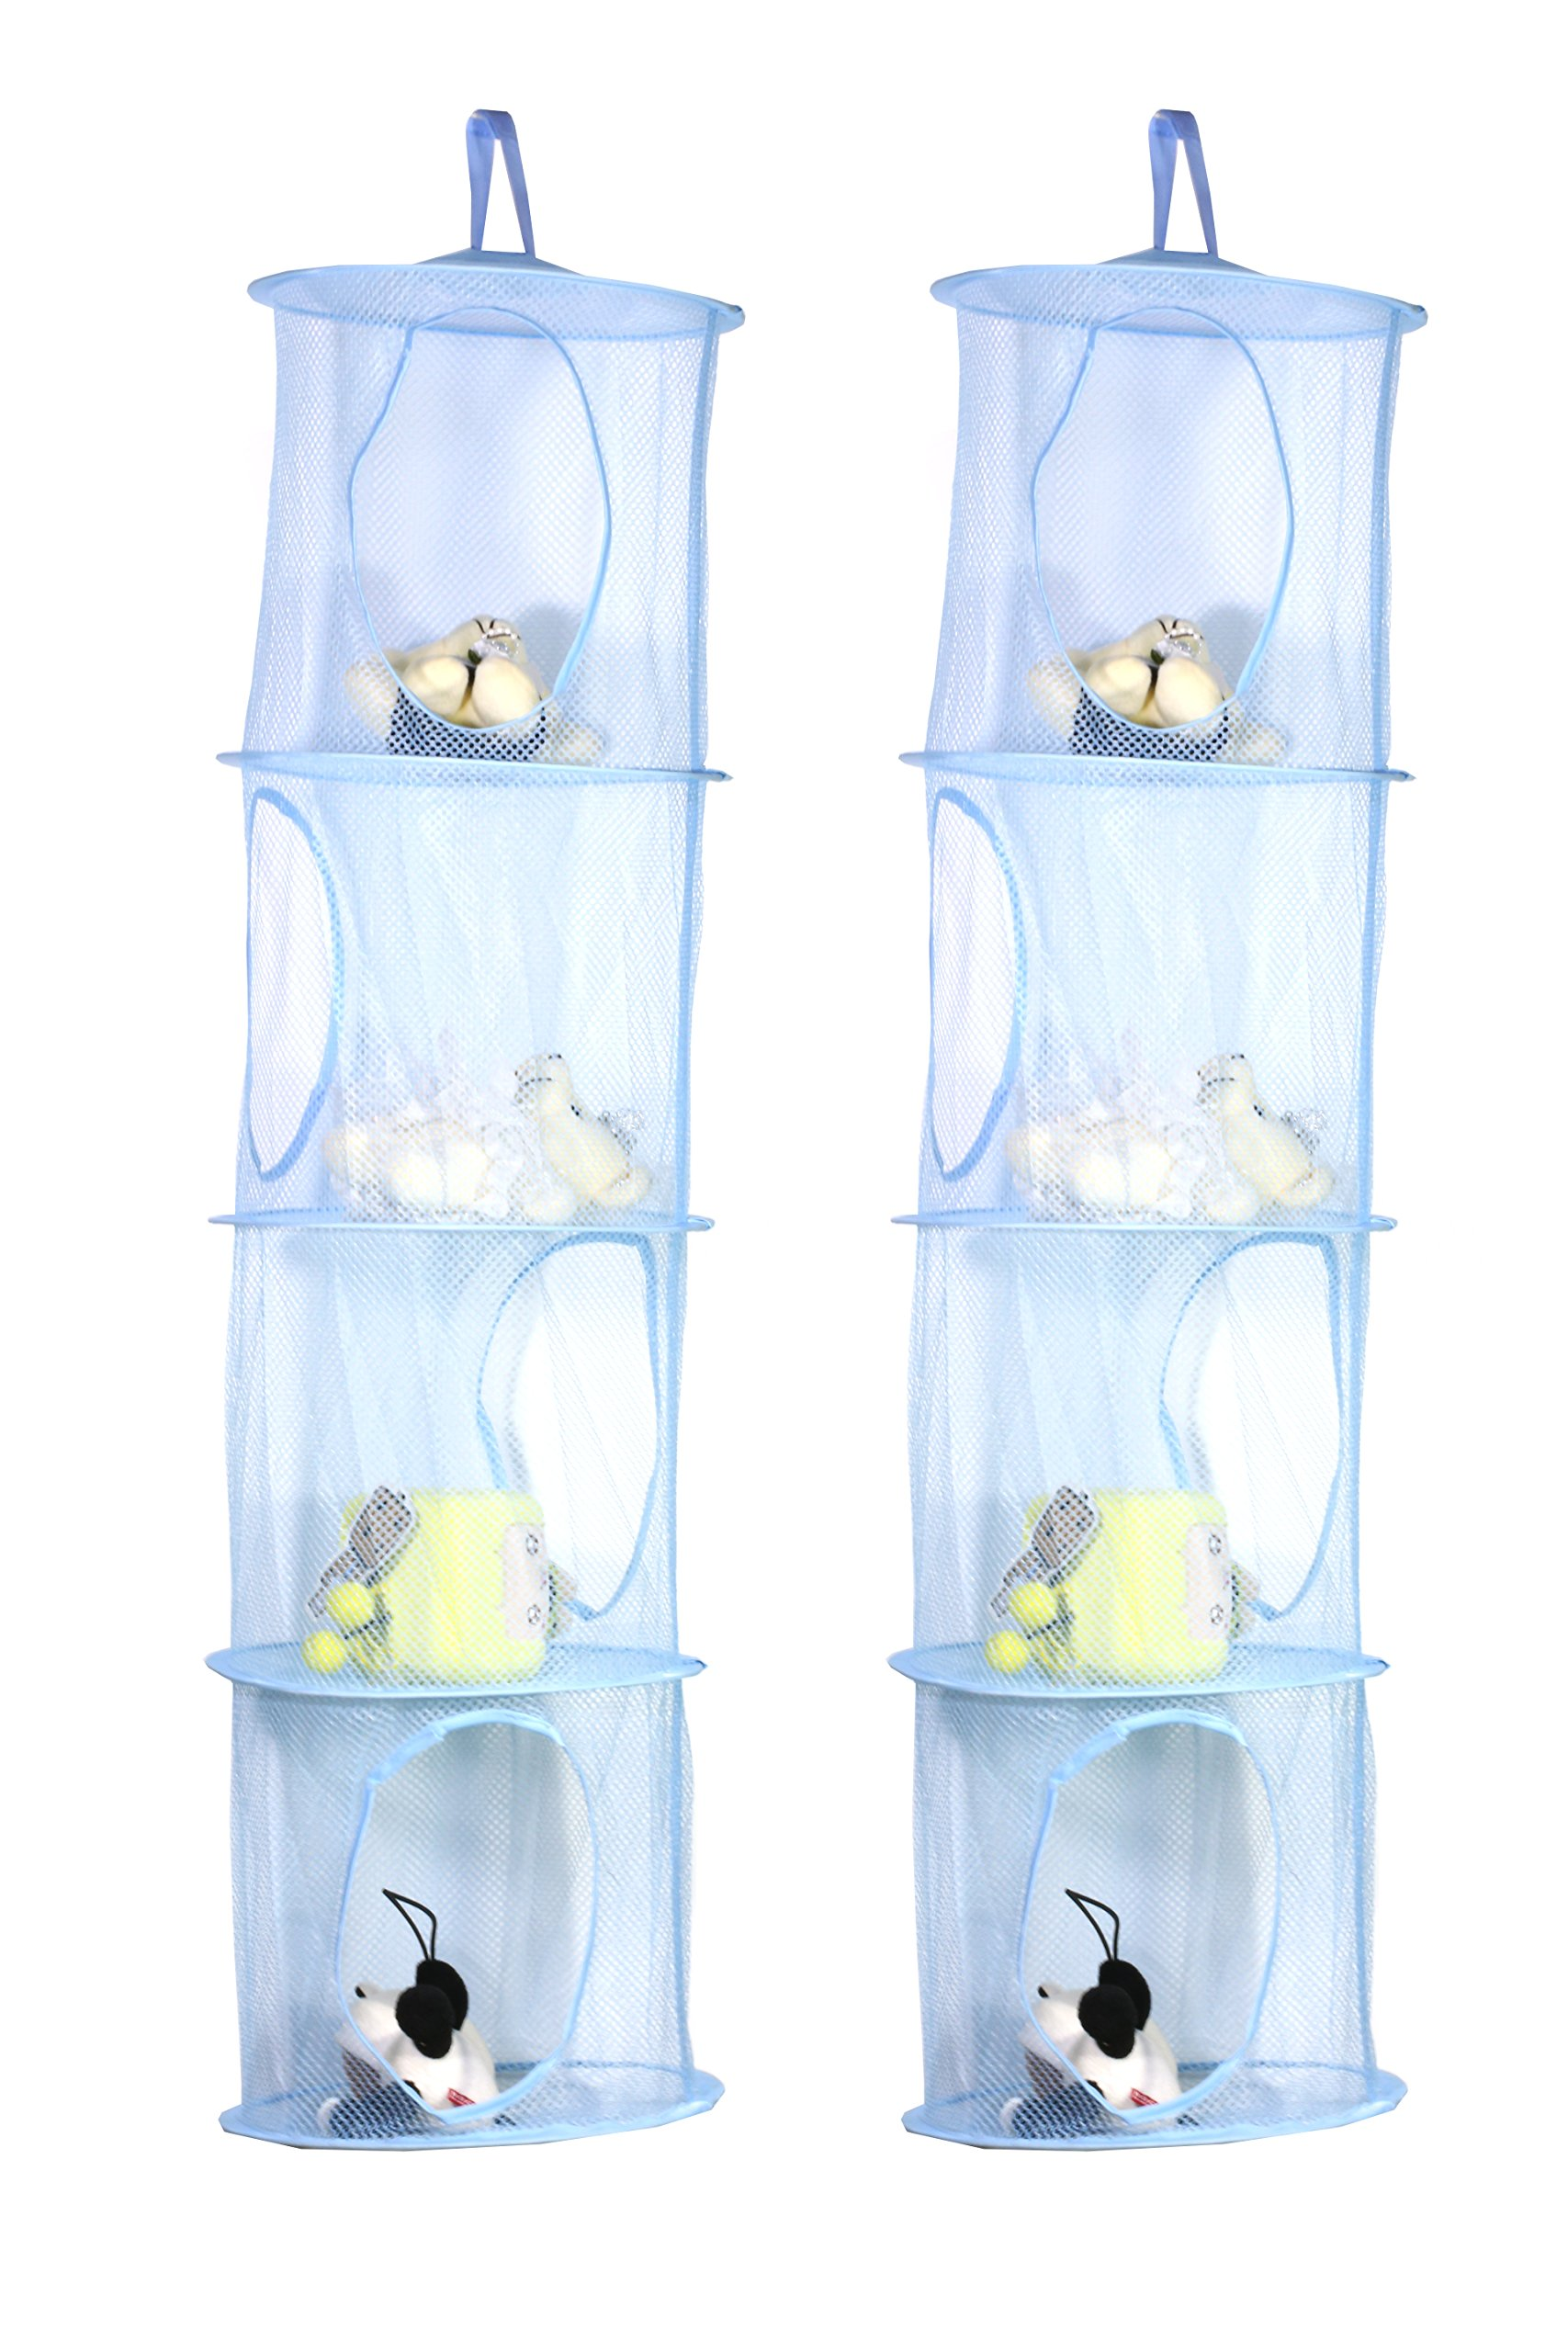 TIRSU Mesh Hanging Storage Organizer toy storage space saver bags 4 Compartments for kid room blue 2pieces lz0001-blue-4tr